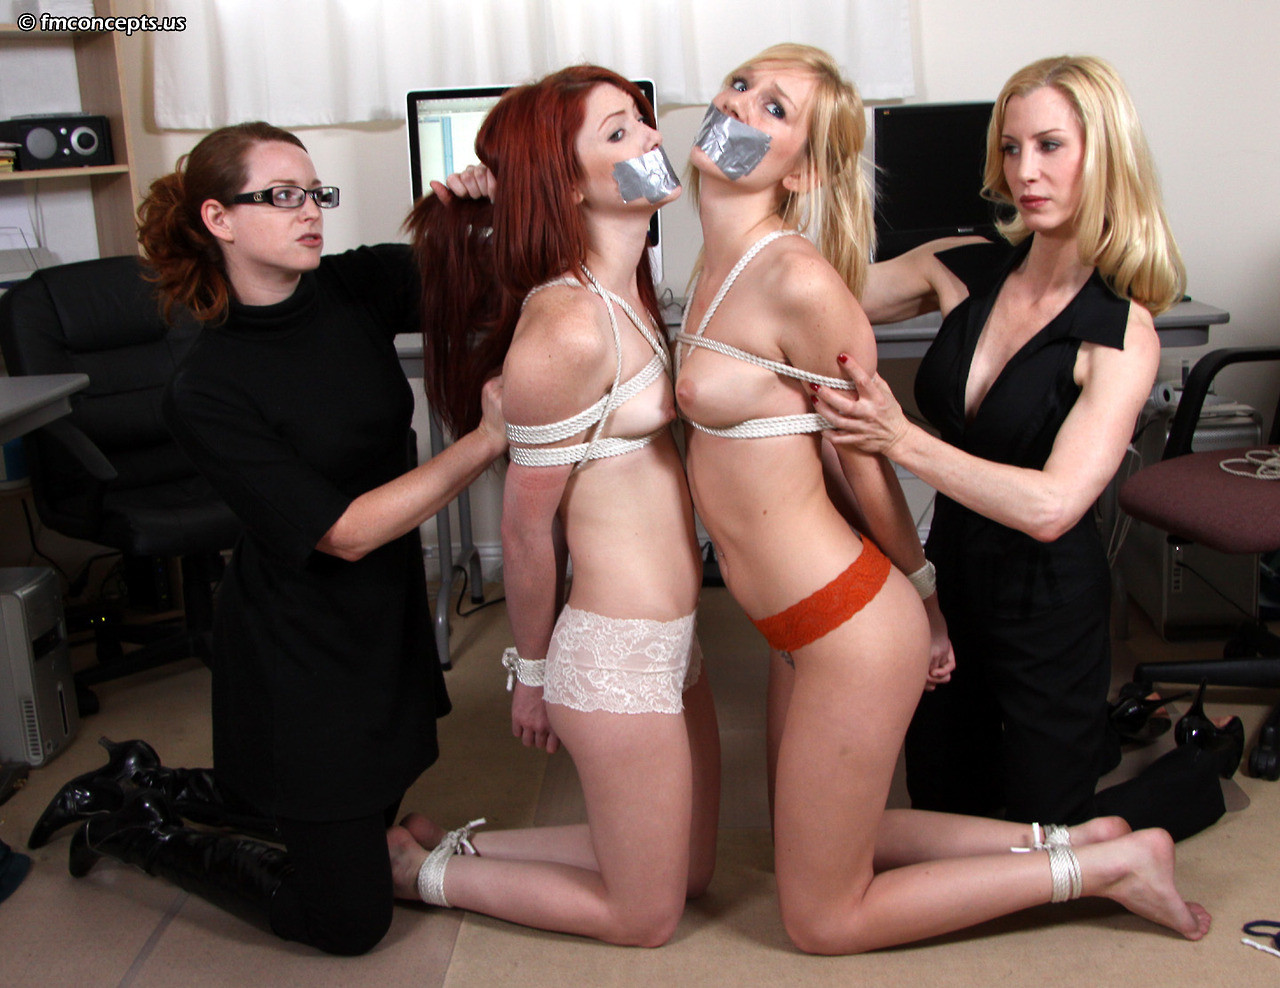 slaveauctions:  The two girls were the last ones in the office. Right before they left the slavers nabbed them. Their transition from secretaries to slaves started right away.